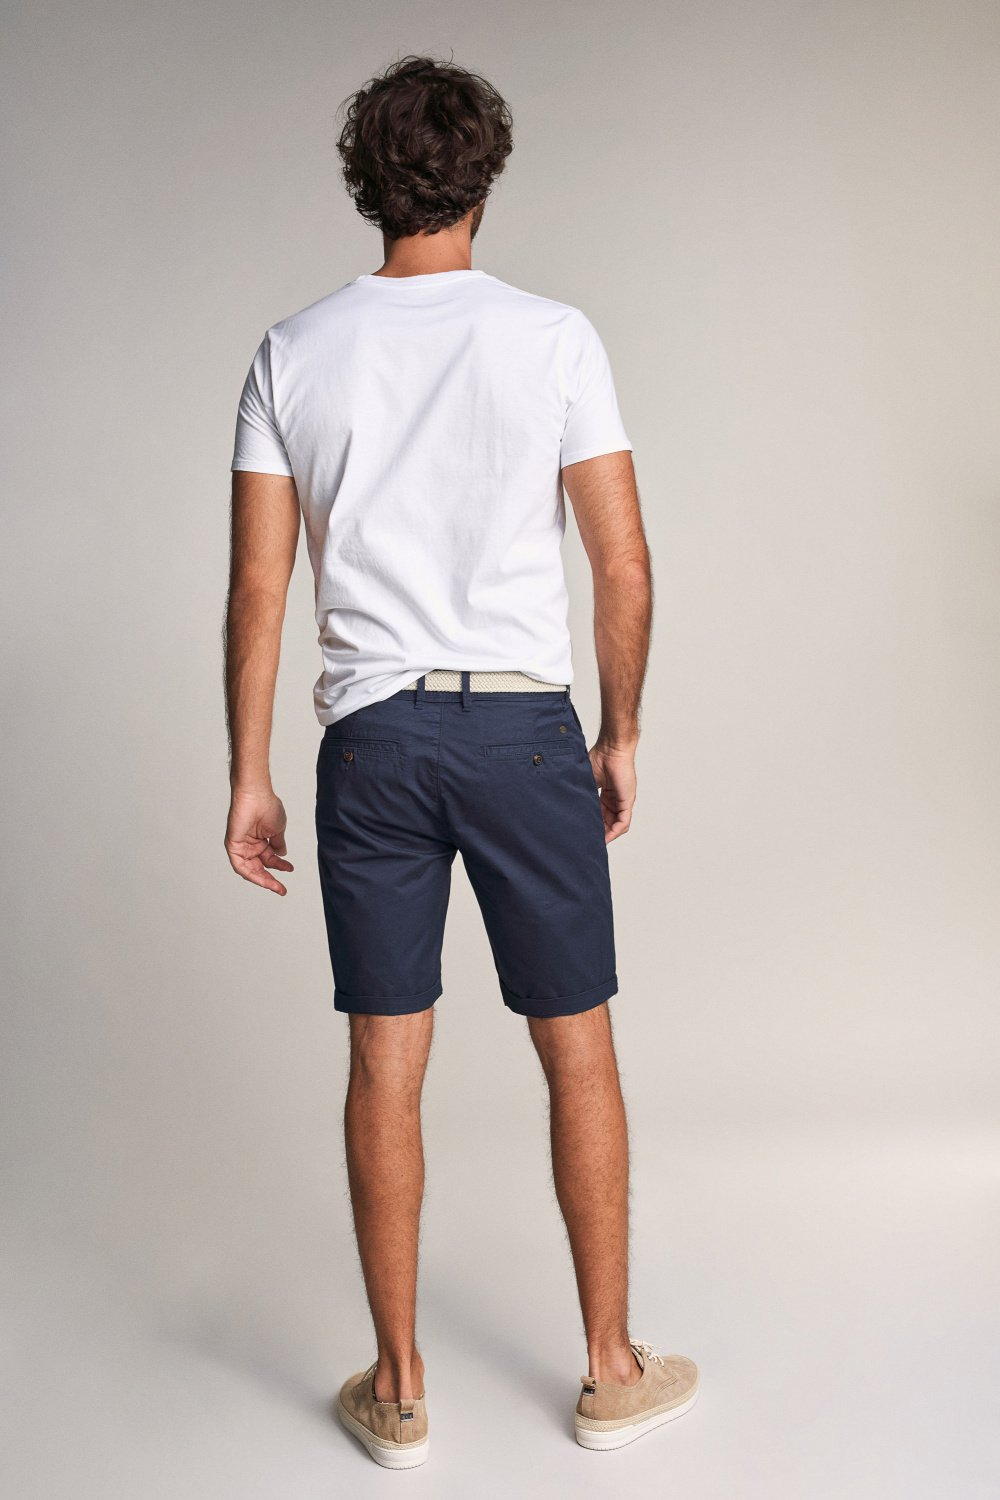 Brandon loose shorts with belt - Salsa